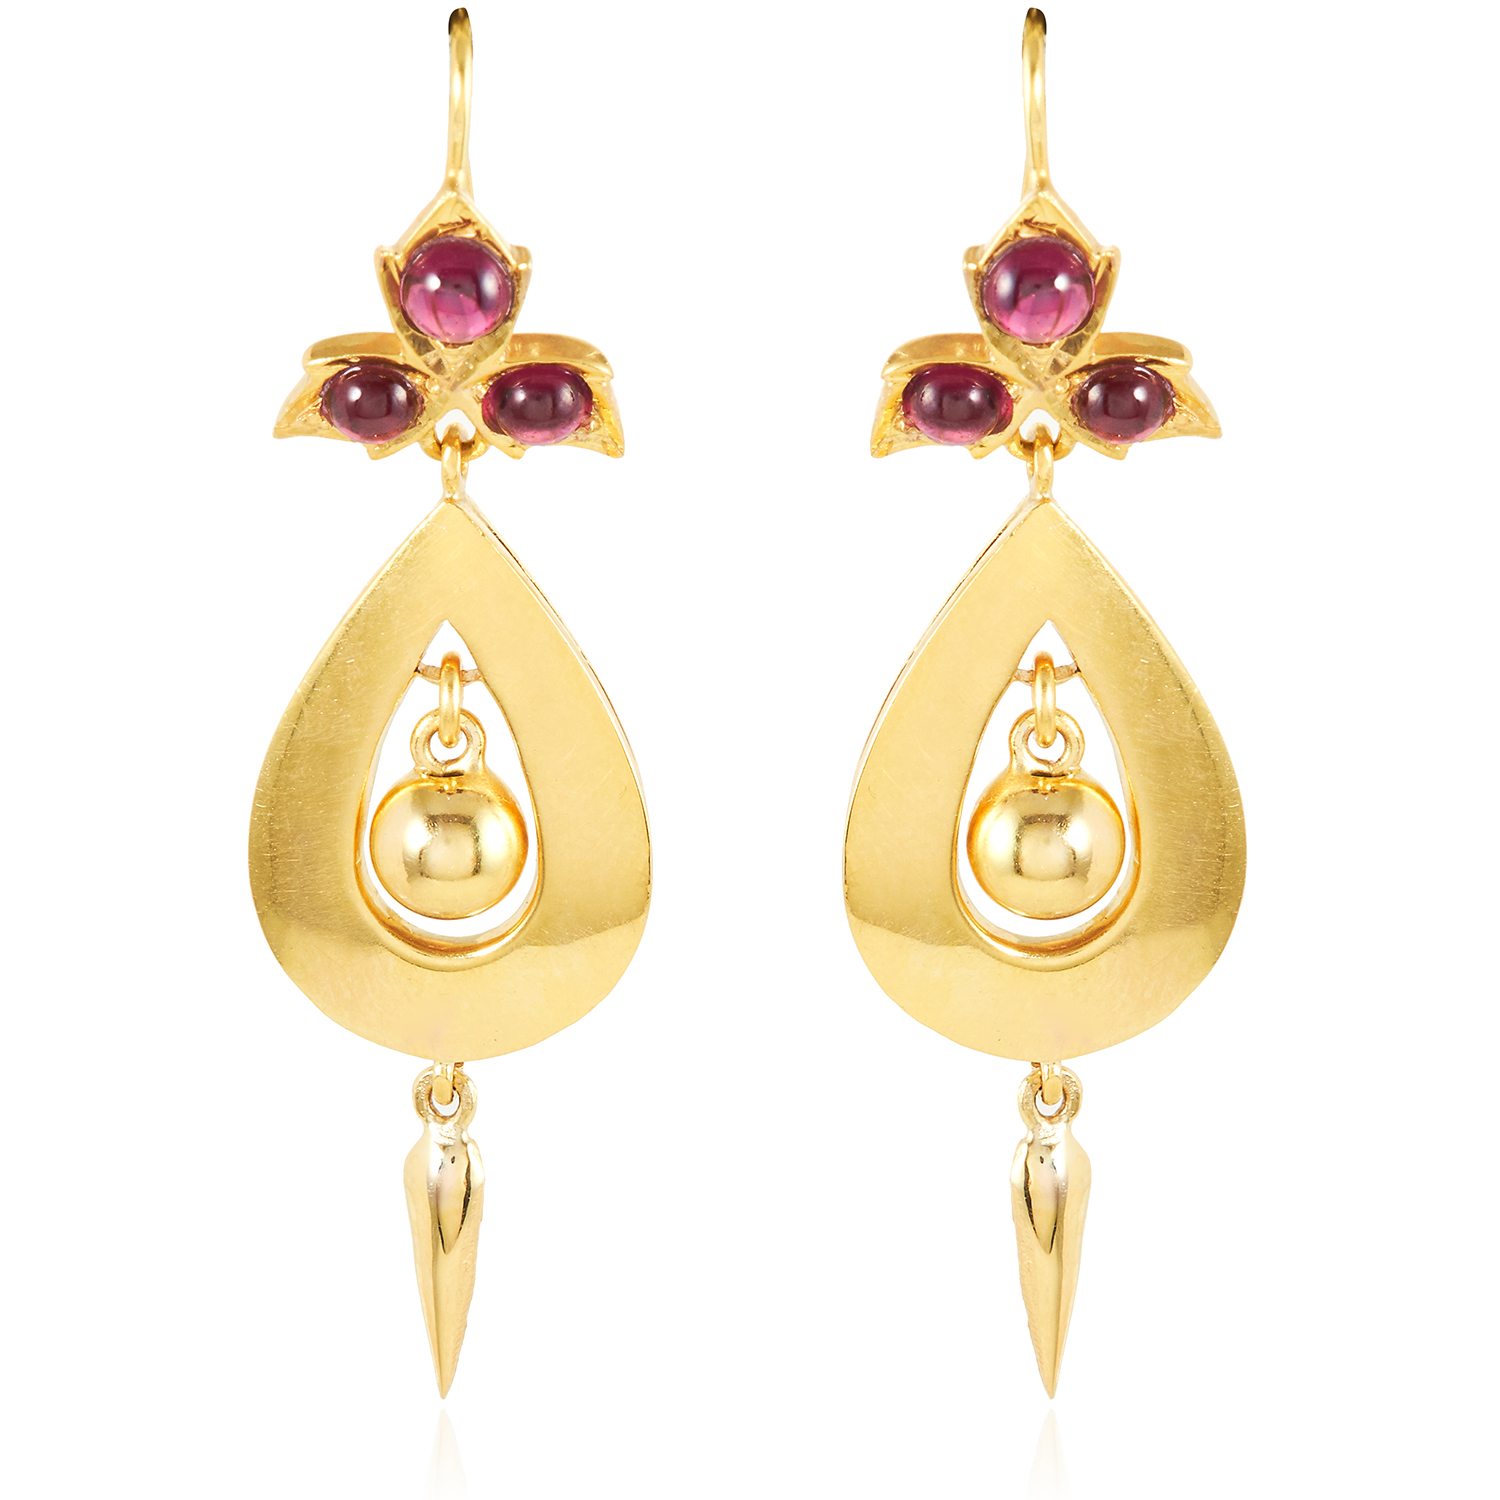 Los 33 - A PAIR OF ANTIQUE GARNET DROP EARRINGS, 19TH CENTURY in high carat yellow gold, each with a